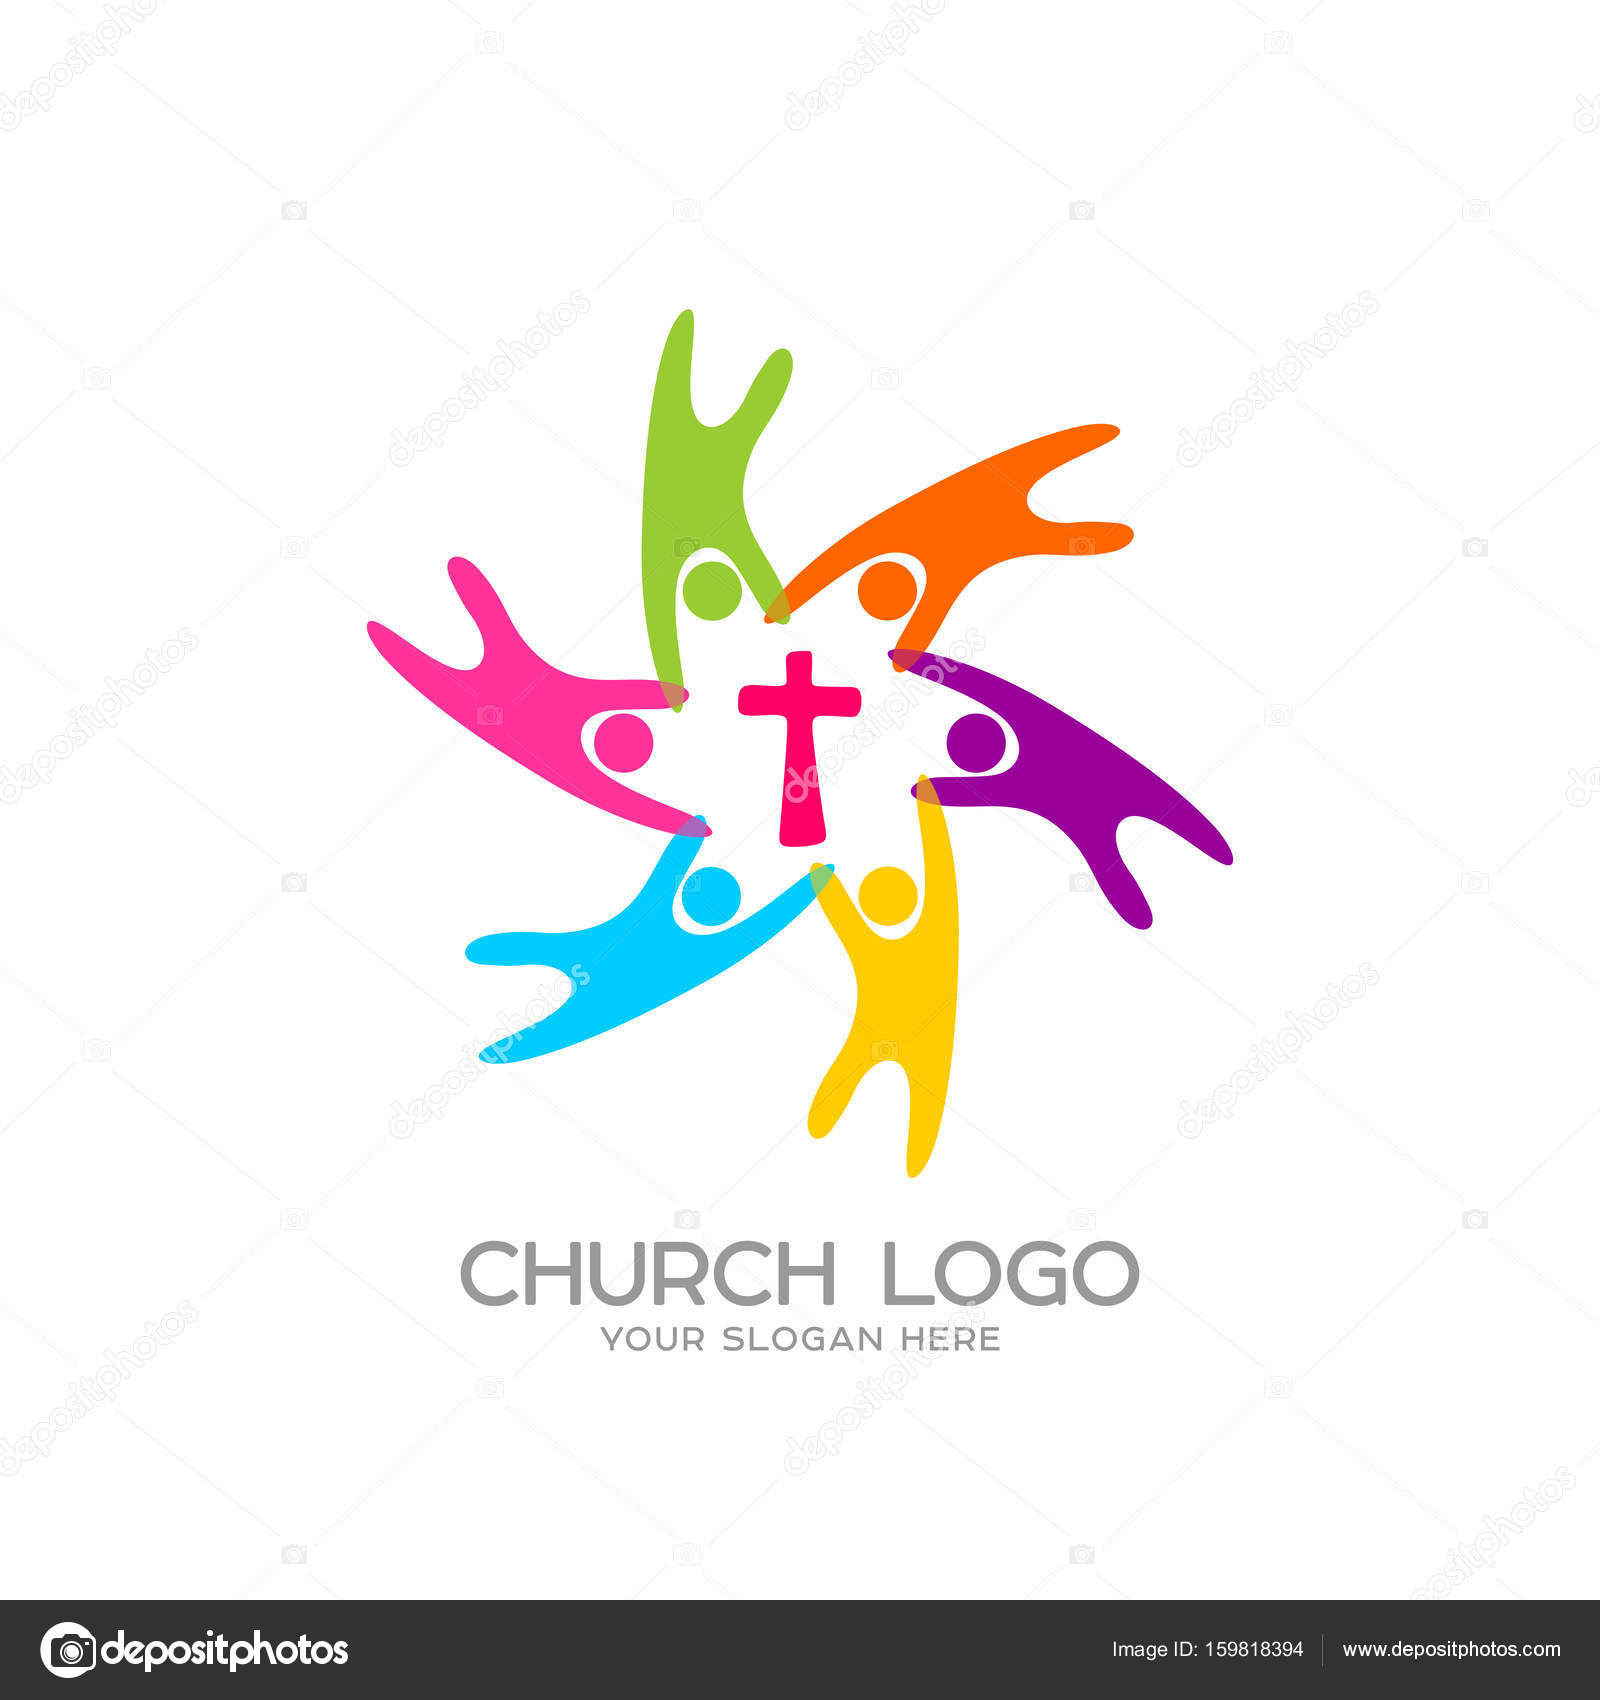 Church logo christian symbols people united by the savior jesus christian symbols people united by the savior jesus stock vector biocorpaavc Image collections